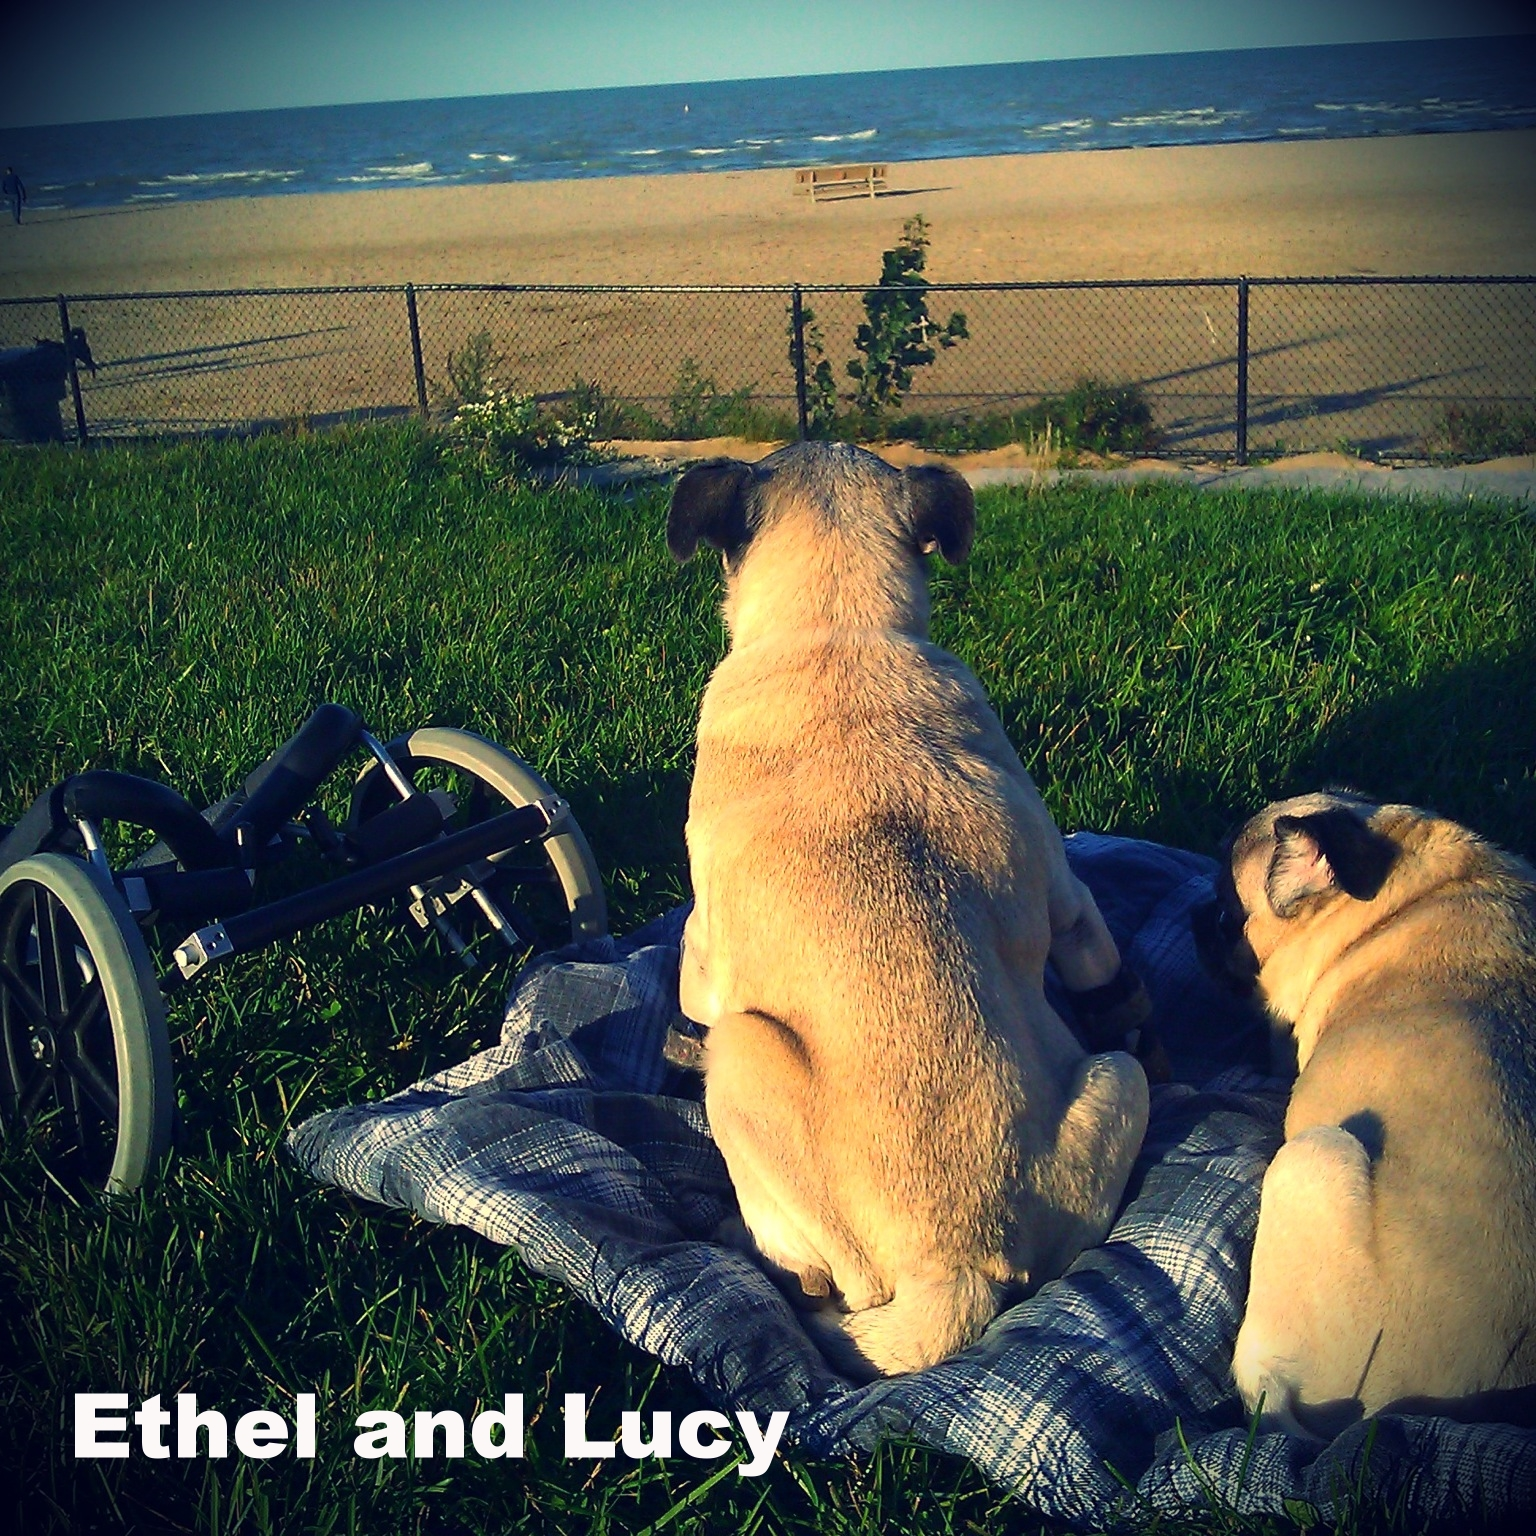 Ethel and Lucy